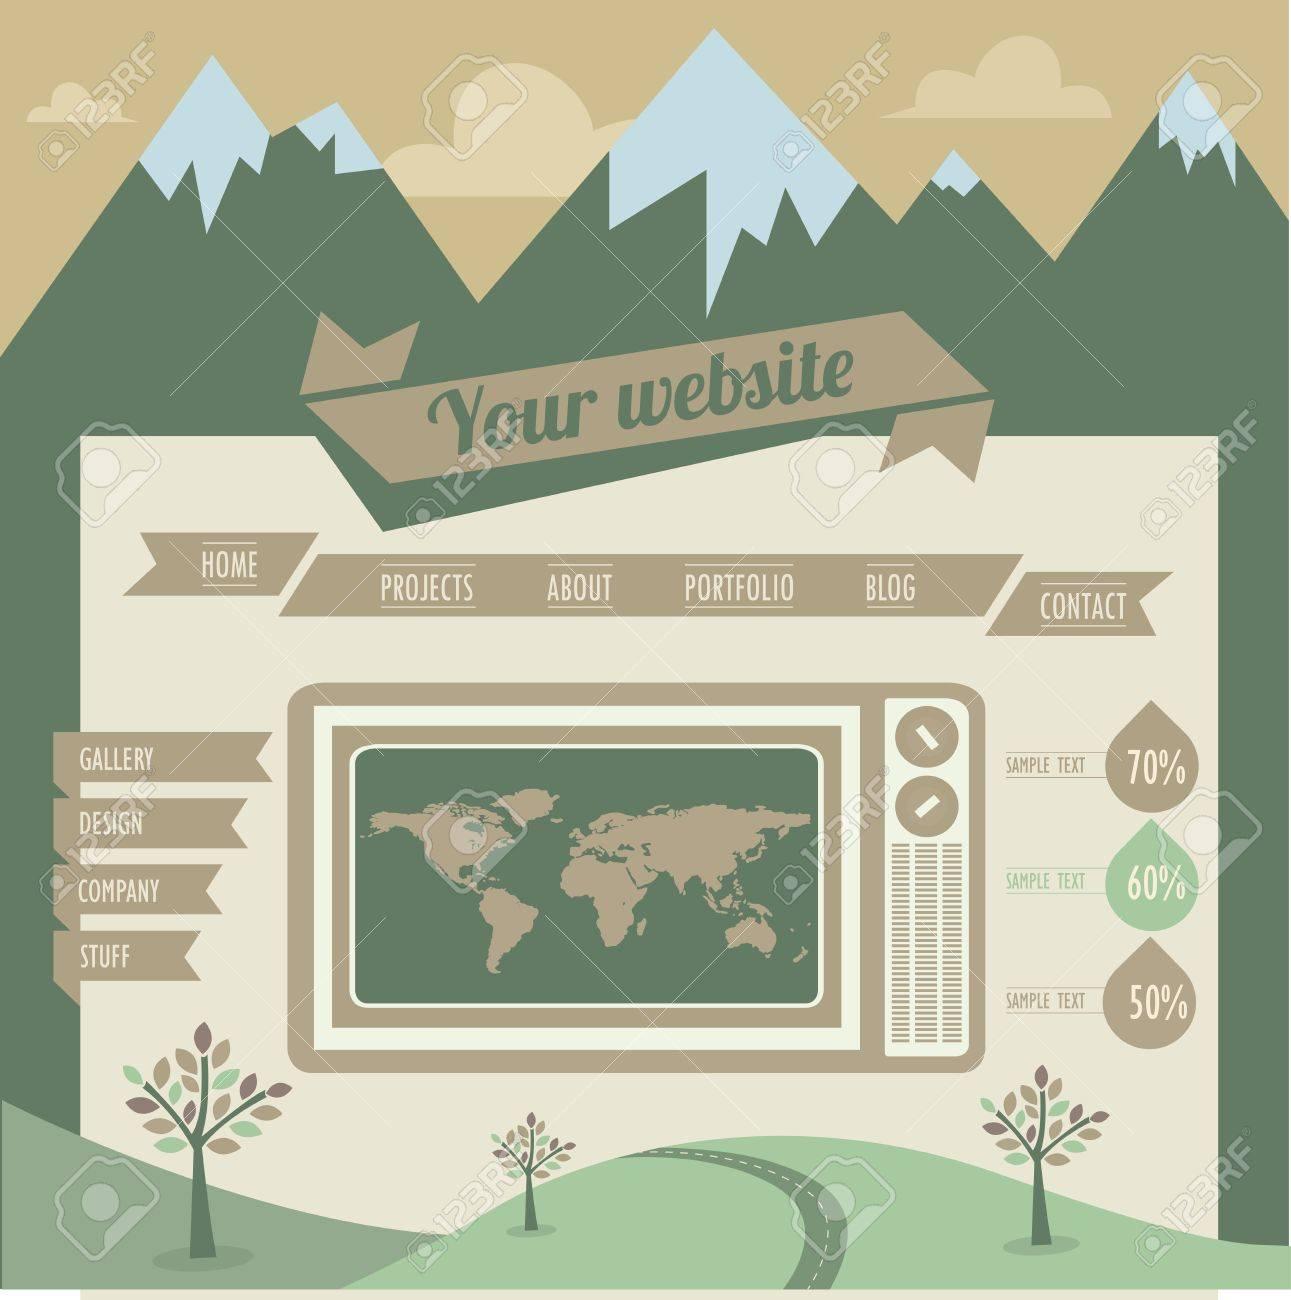 Vintage retro website template Stock Vector - 16967540